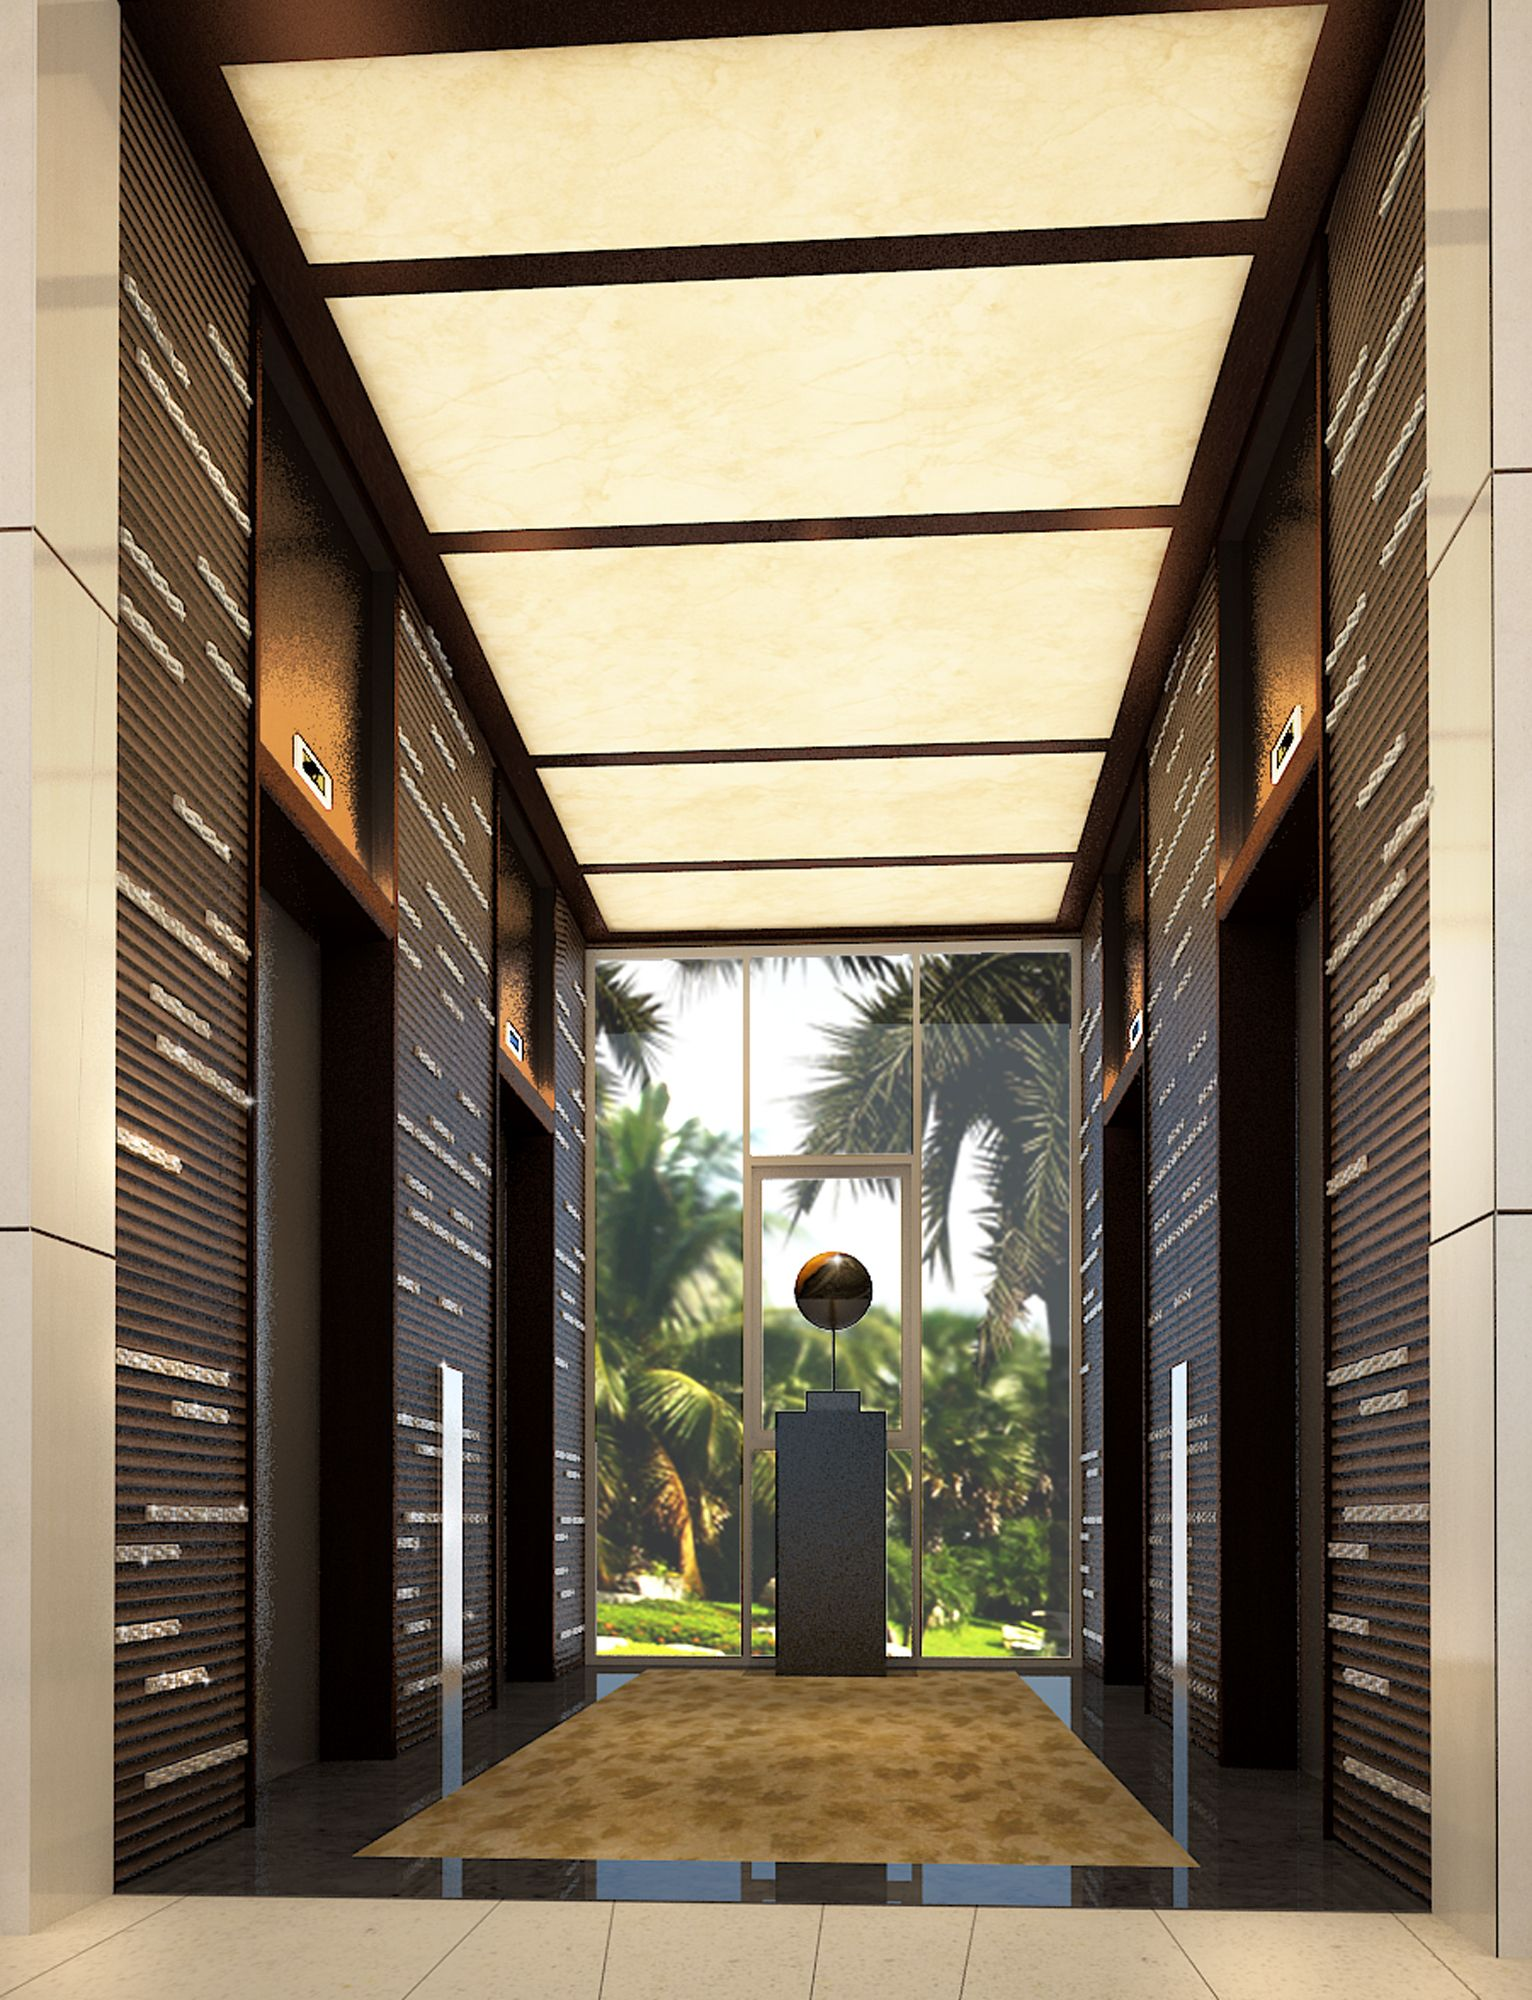 10 Best Modern Home Design Ideas Decoration: Perspective For Lift Lobby